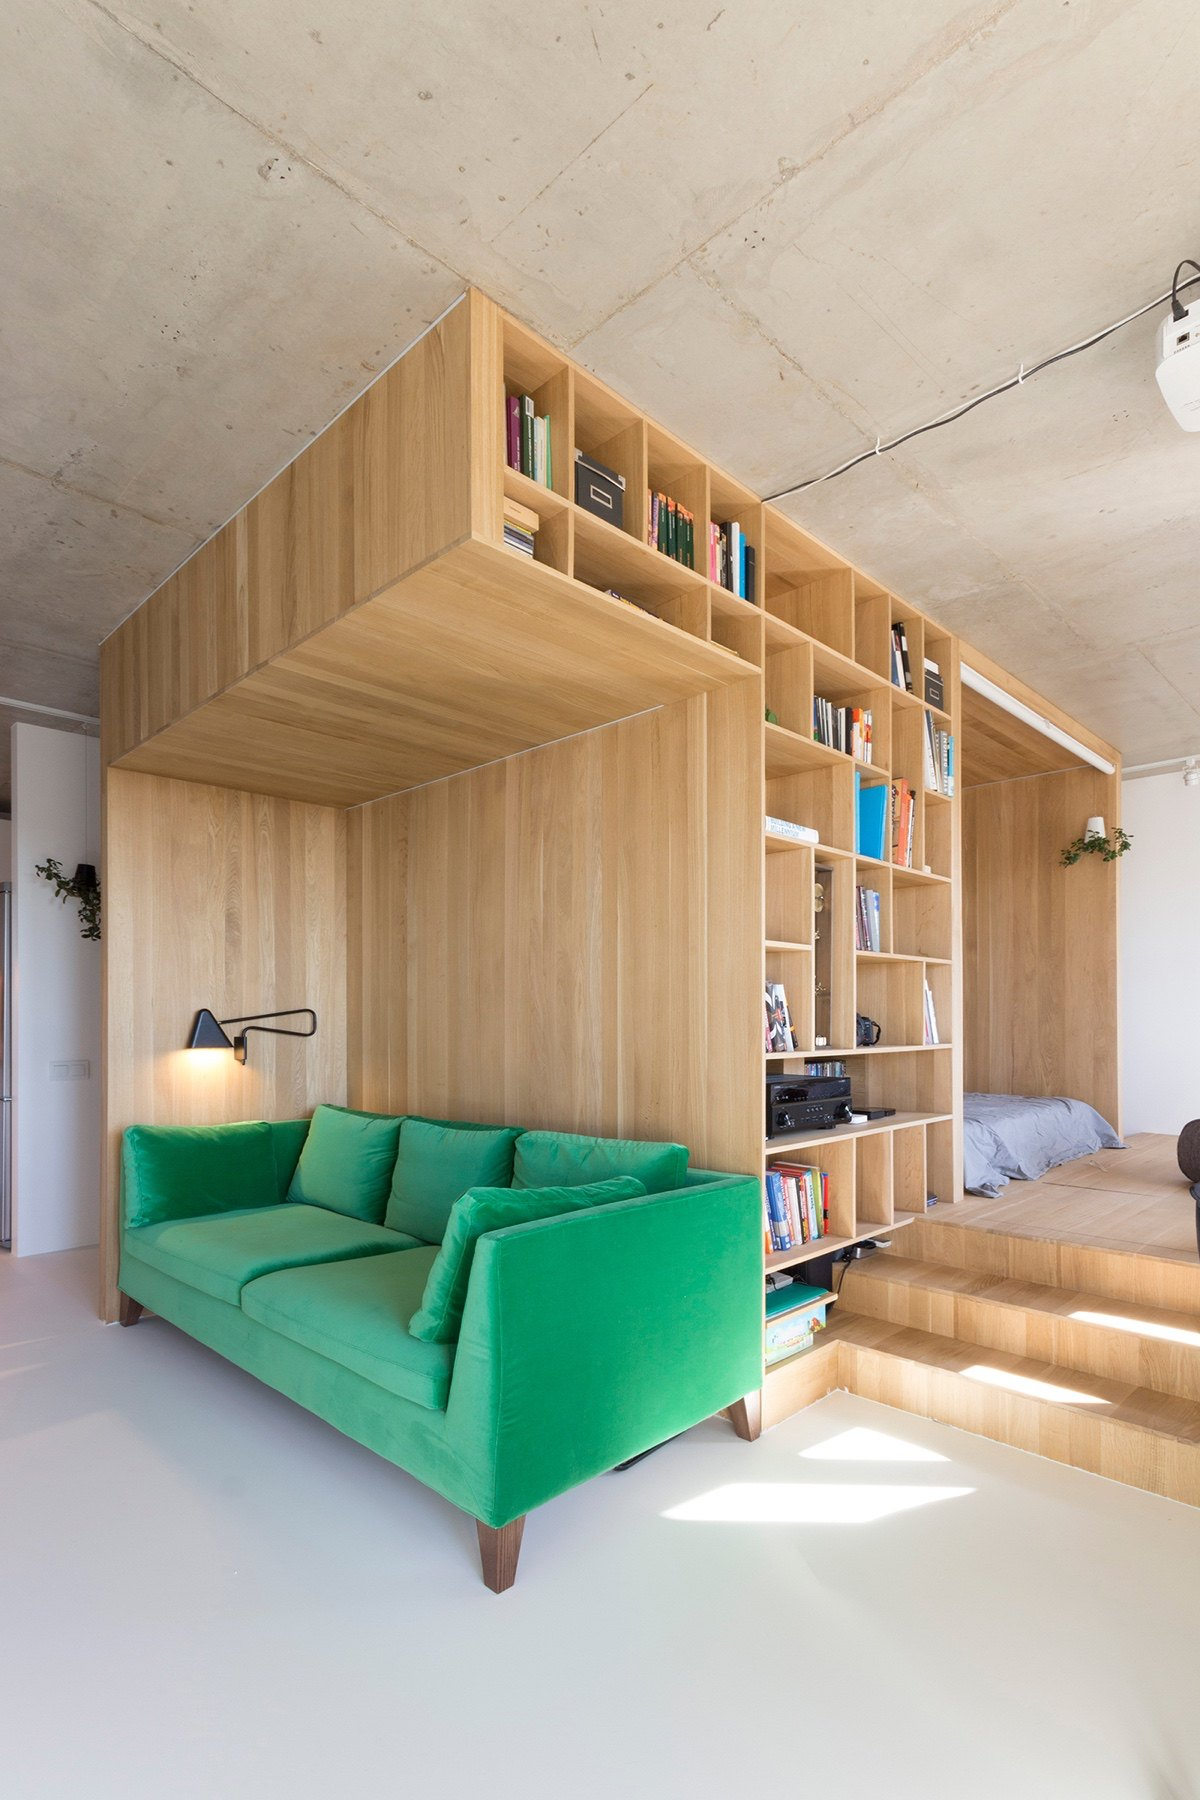 http://cdn.home-designing.com/wp-content/uploads/2016/10/Feature-leaf-green-velvet-couch-under-50sqm-living-room-backed-by-bookcase.jpg